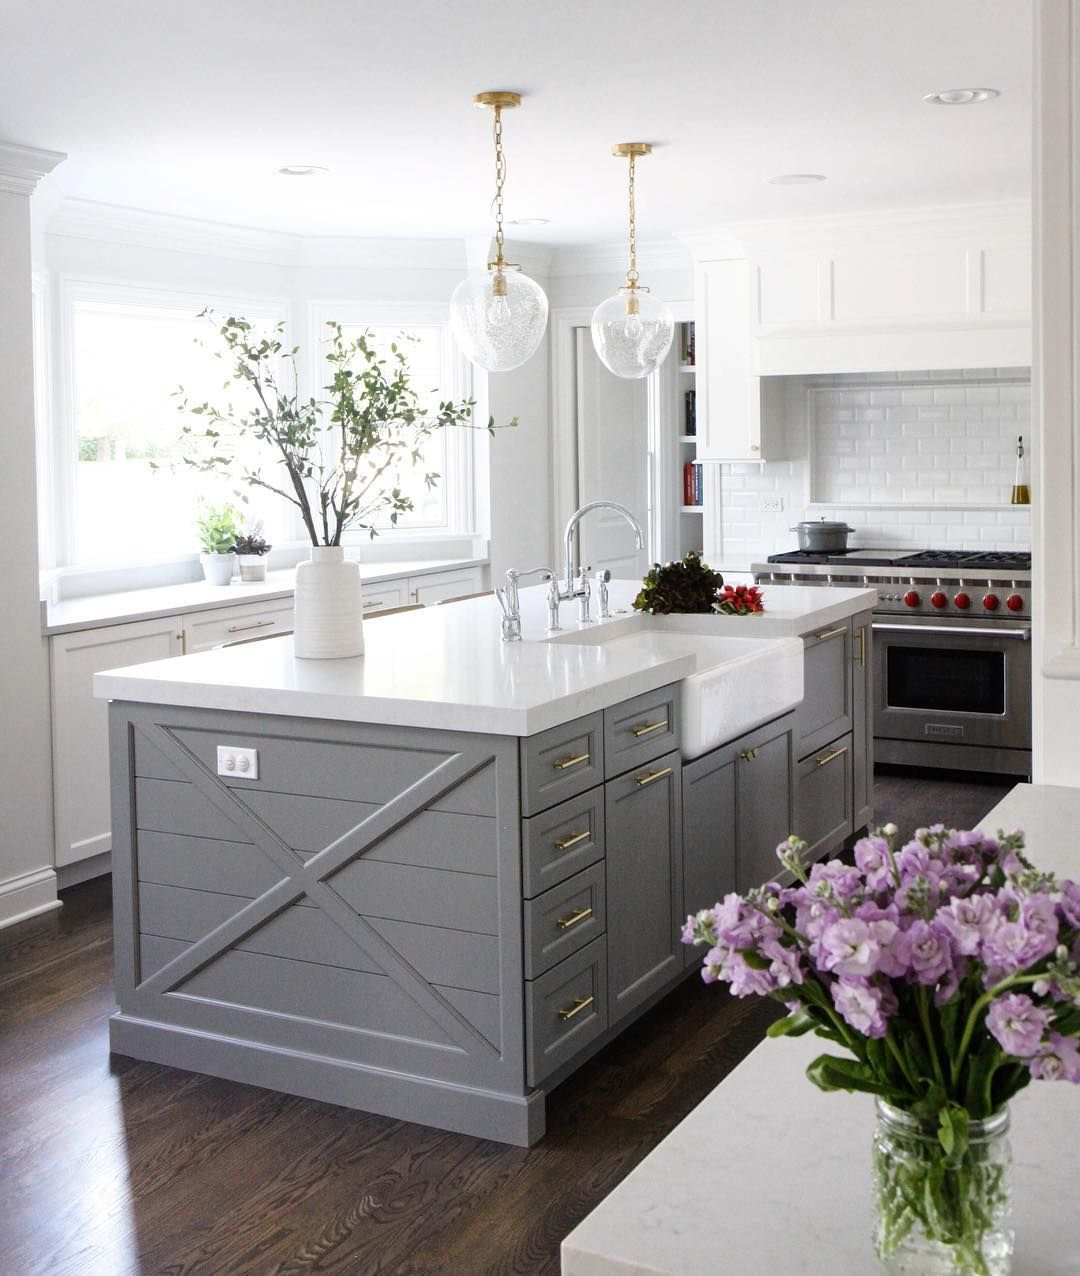 Best Kitchen Gallery: Kitchen Island Paint Color Is Chelsea Gray Benjamin Moore Via Park of Black And Tan Accents With Gray Kitchen on rachelxblog.com